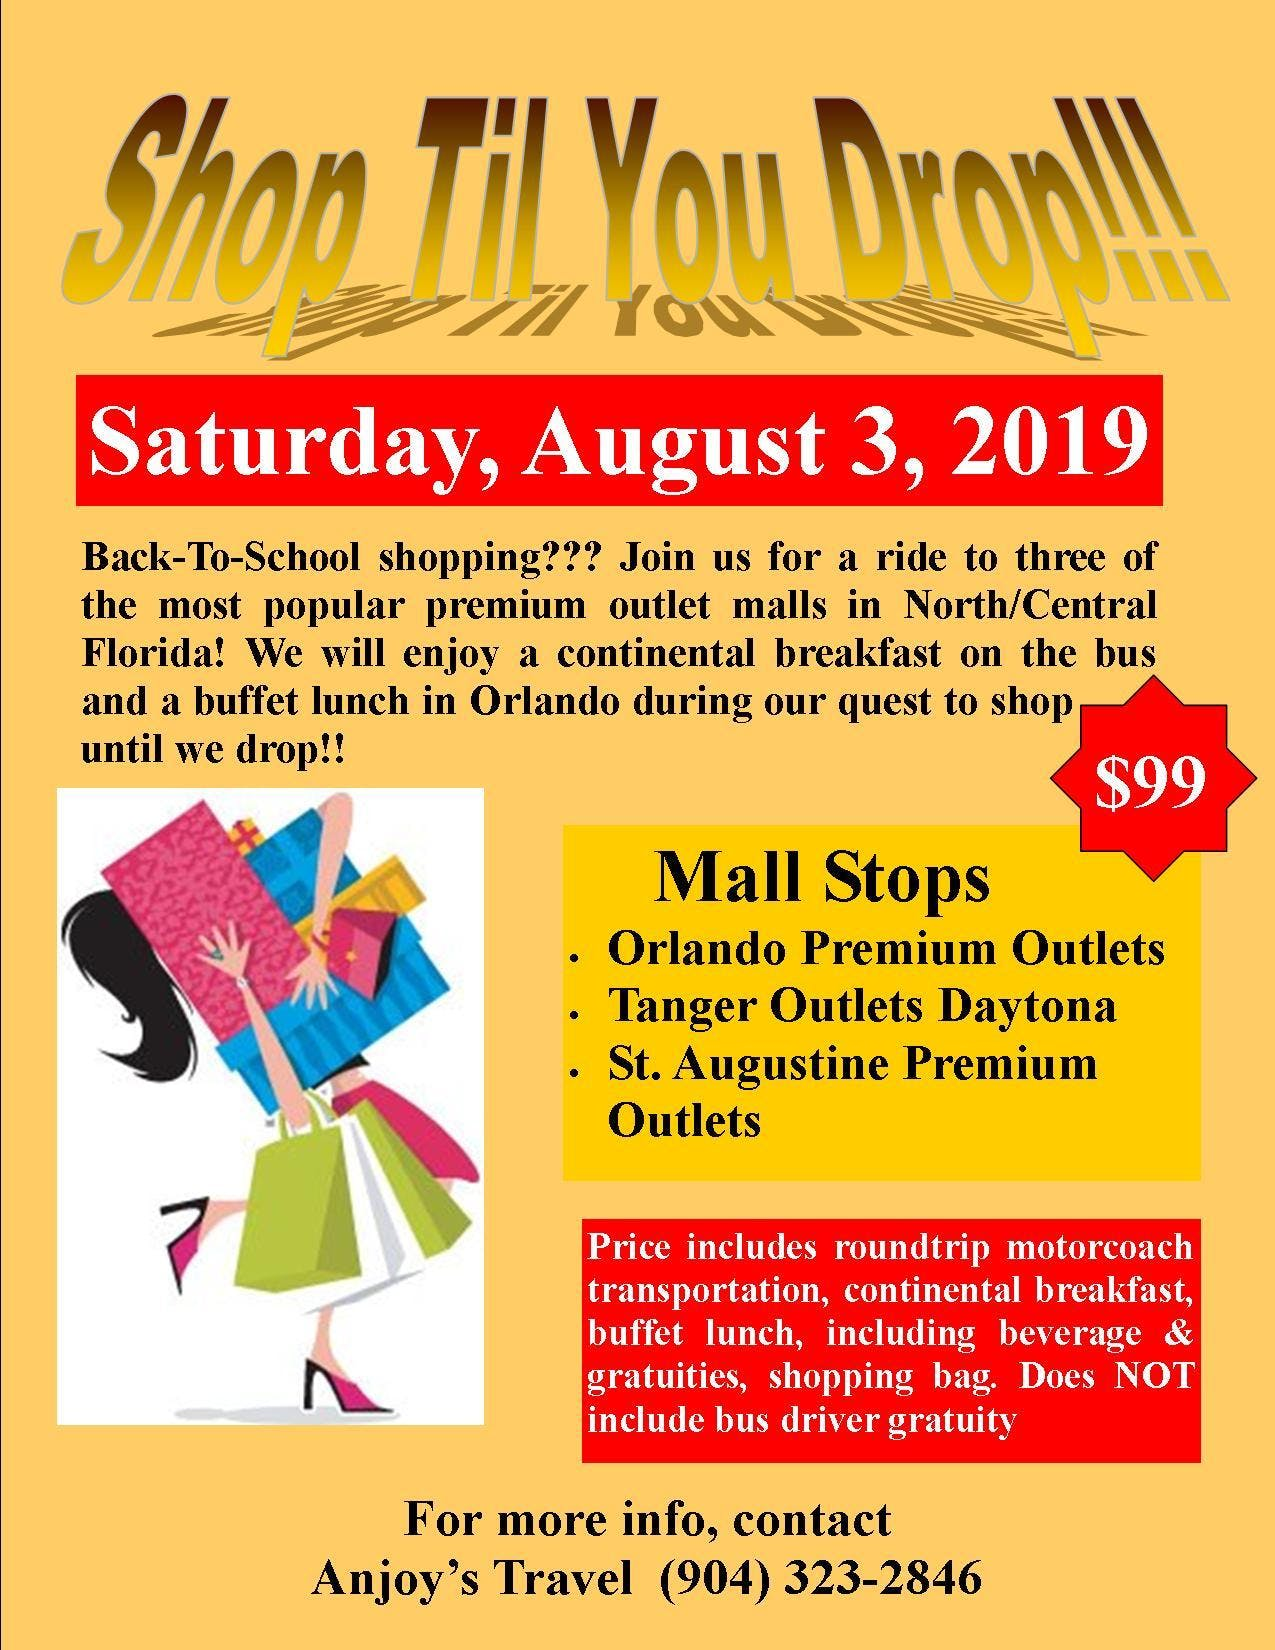 Shop Til You Drop-Fall/Back-To-School Bus Trip at Orlando